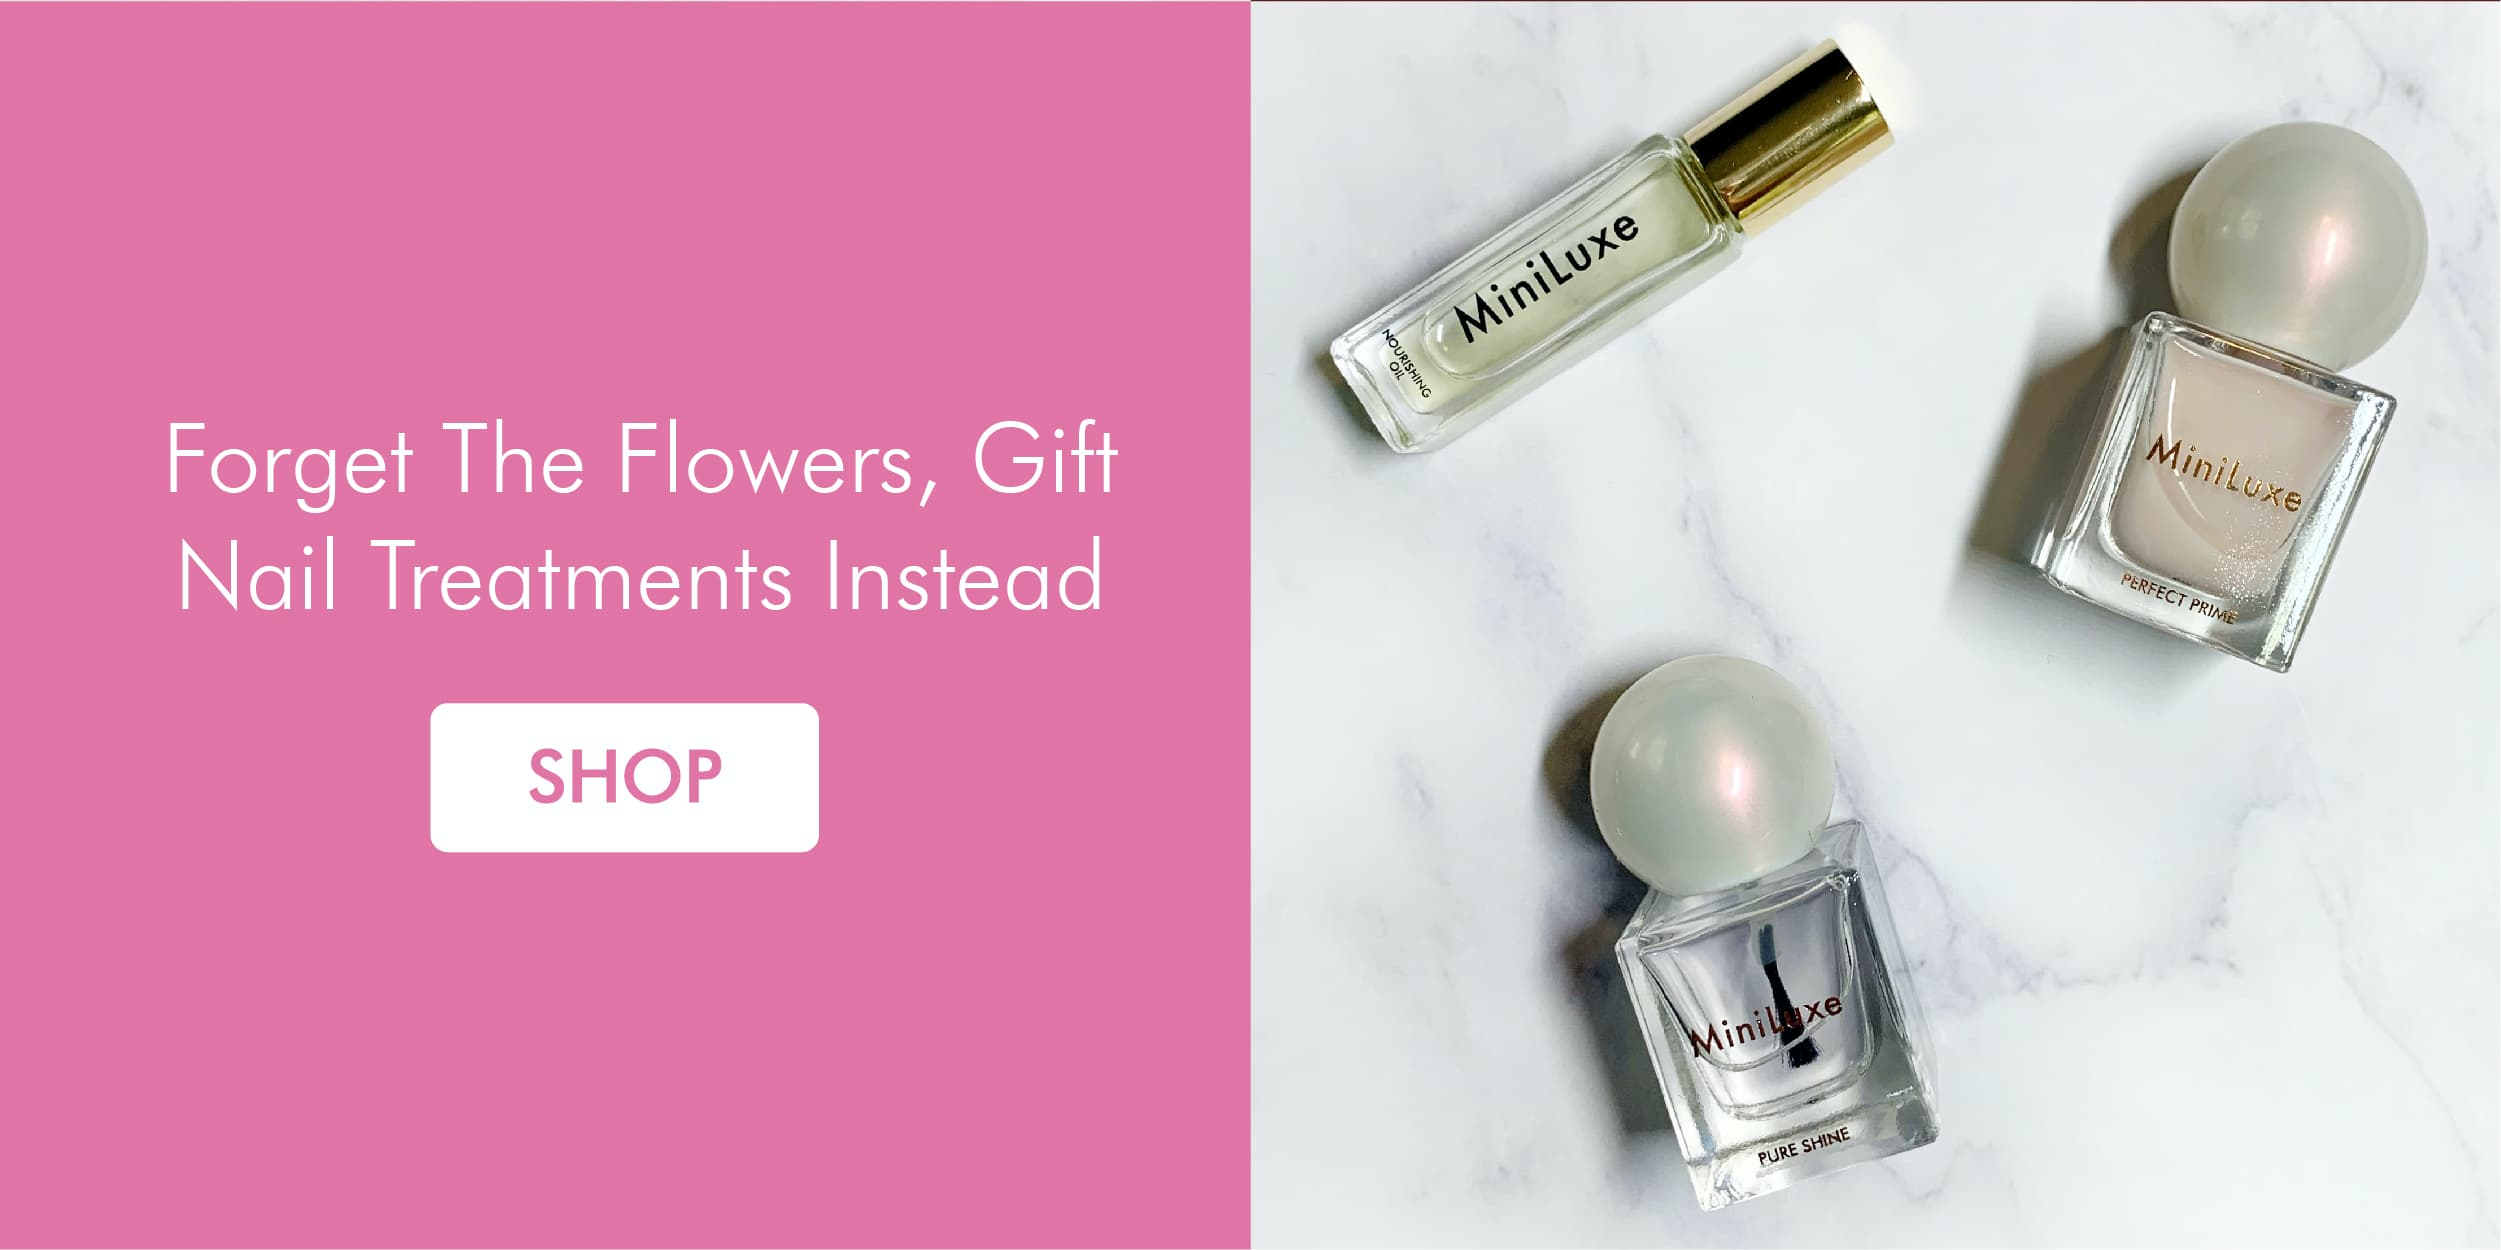 Forget The Flowers, Gift Nail Treatments Instead